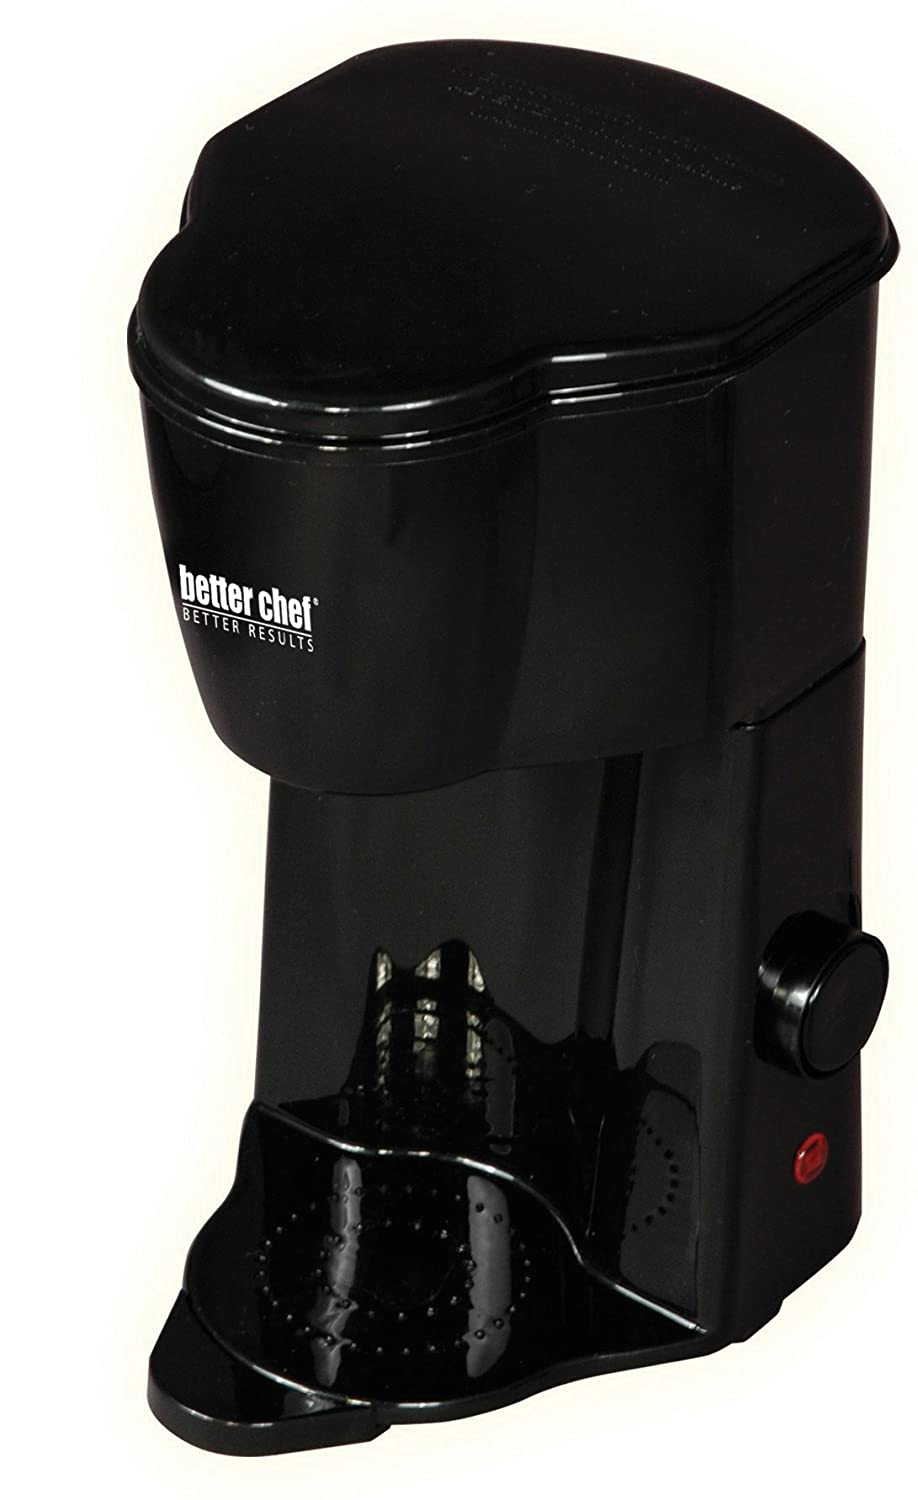 Better Chef IM-102B Compact Personal Coffee Maker | Brews up to 12 oz. | Compact Size